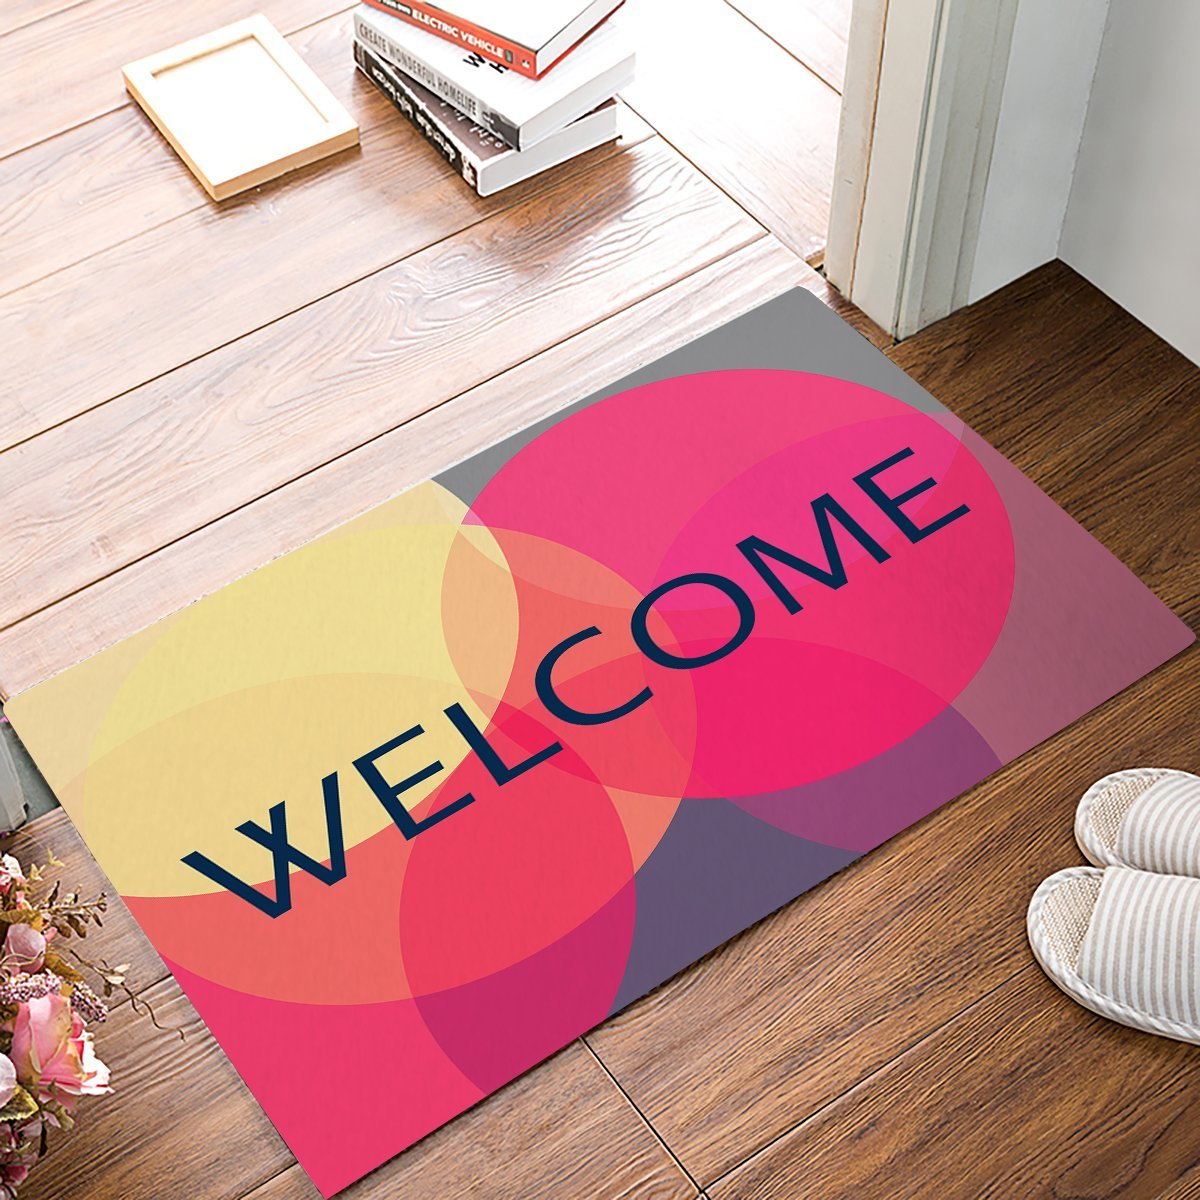 Neon Light Color Blocked Circular Geometric Welcome Door Mats Floor Bath Entrance Rug Mat Indoor Bathroom Kitchen Doormat